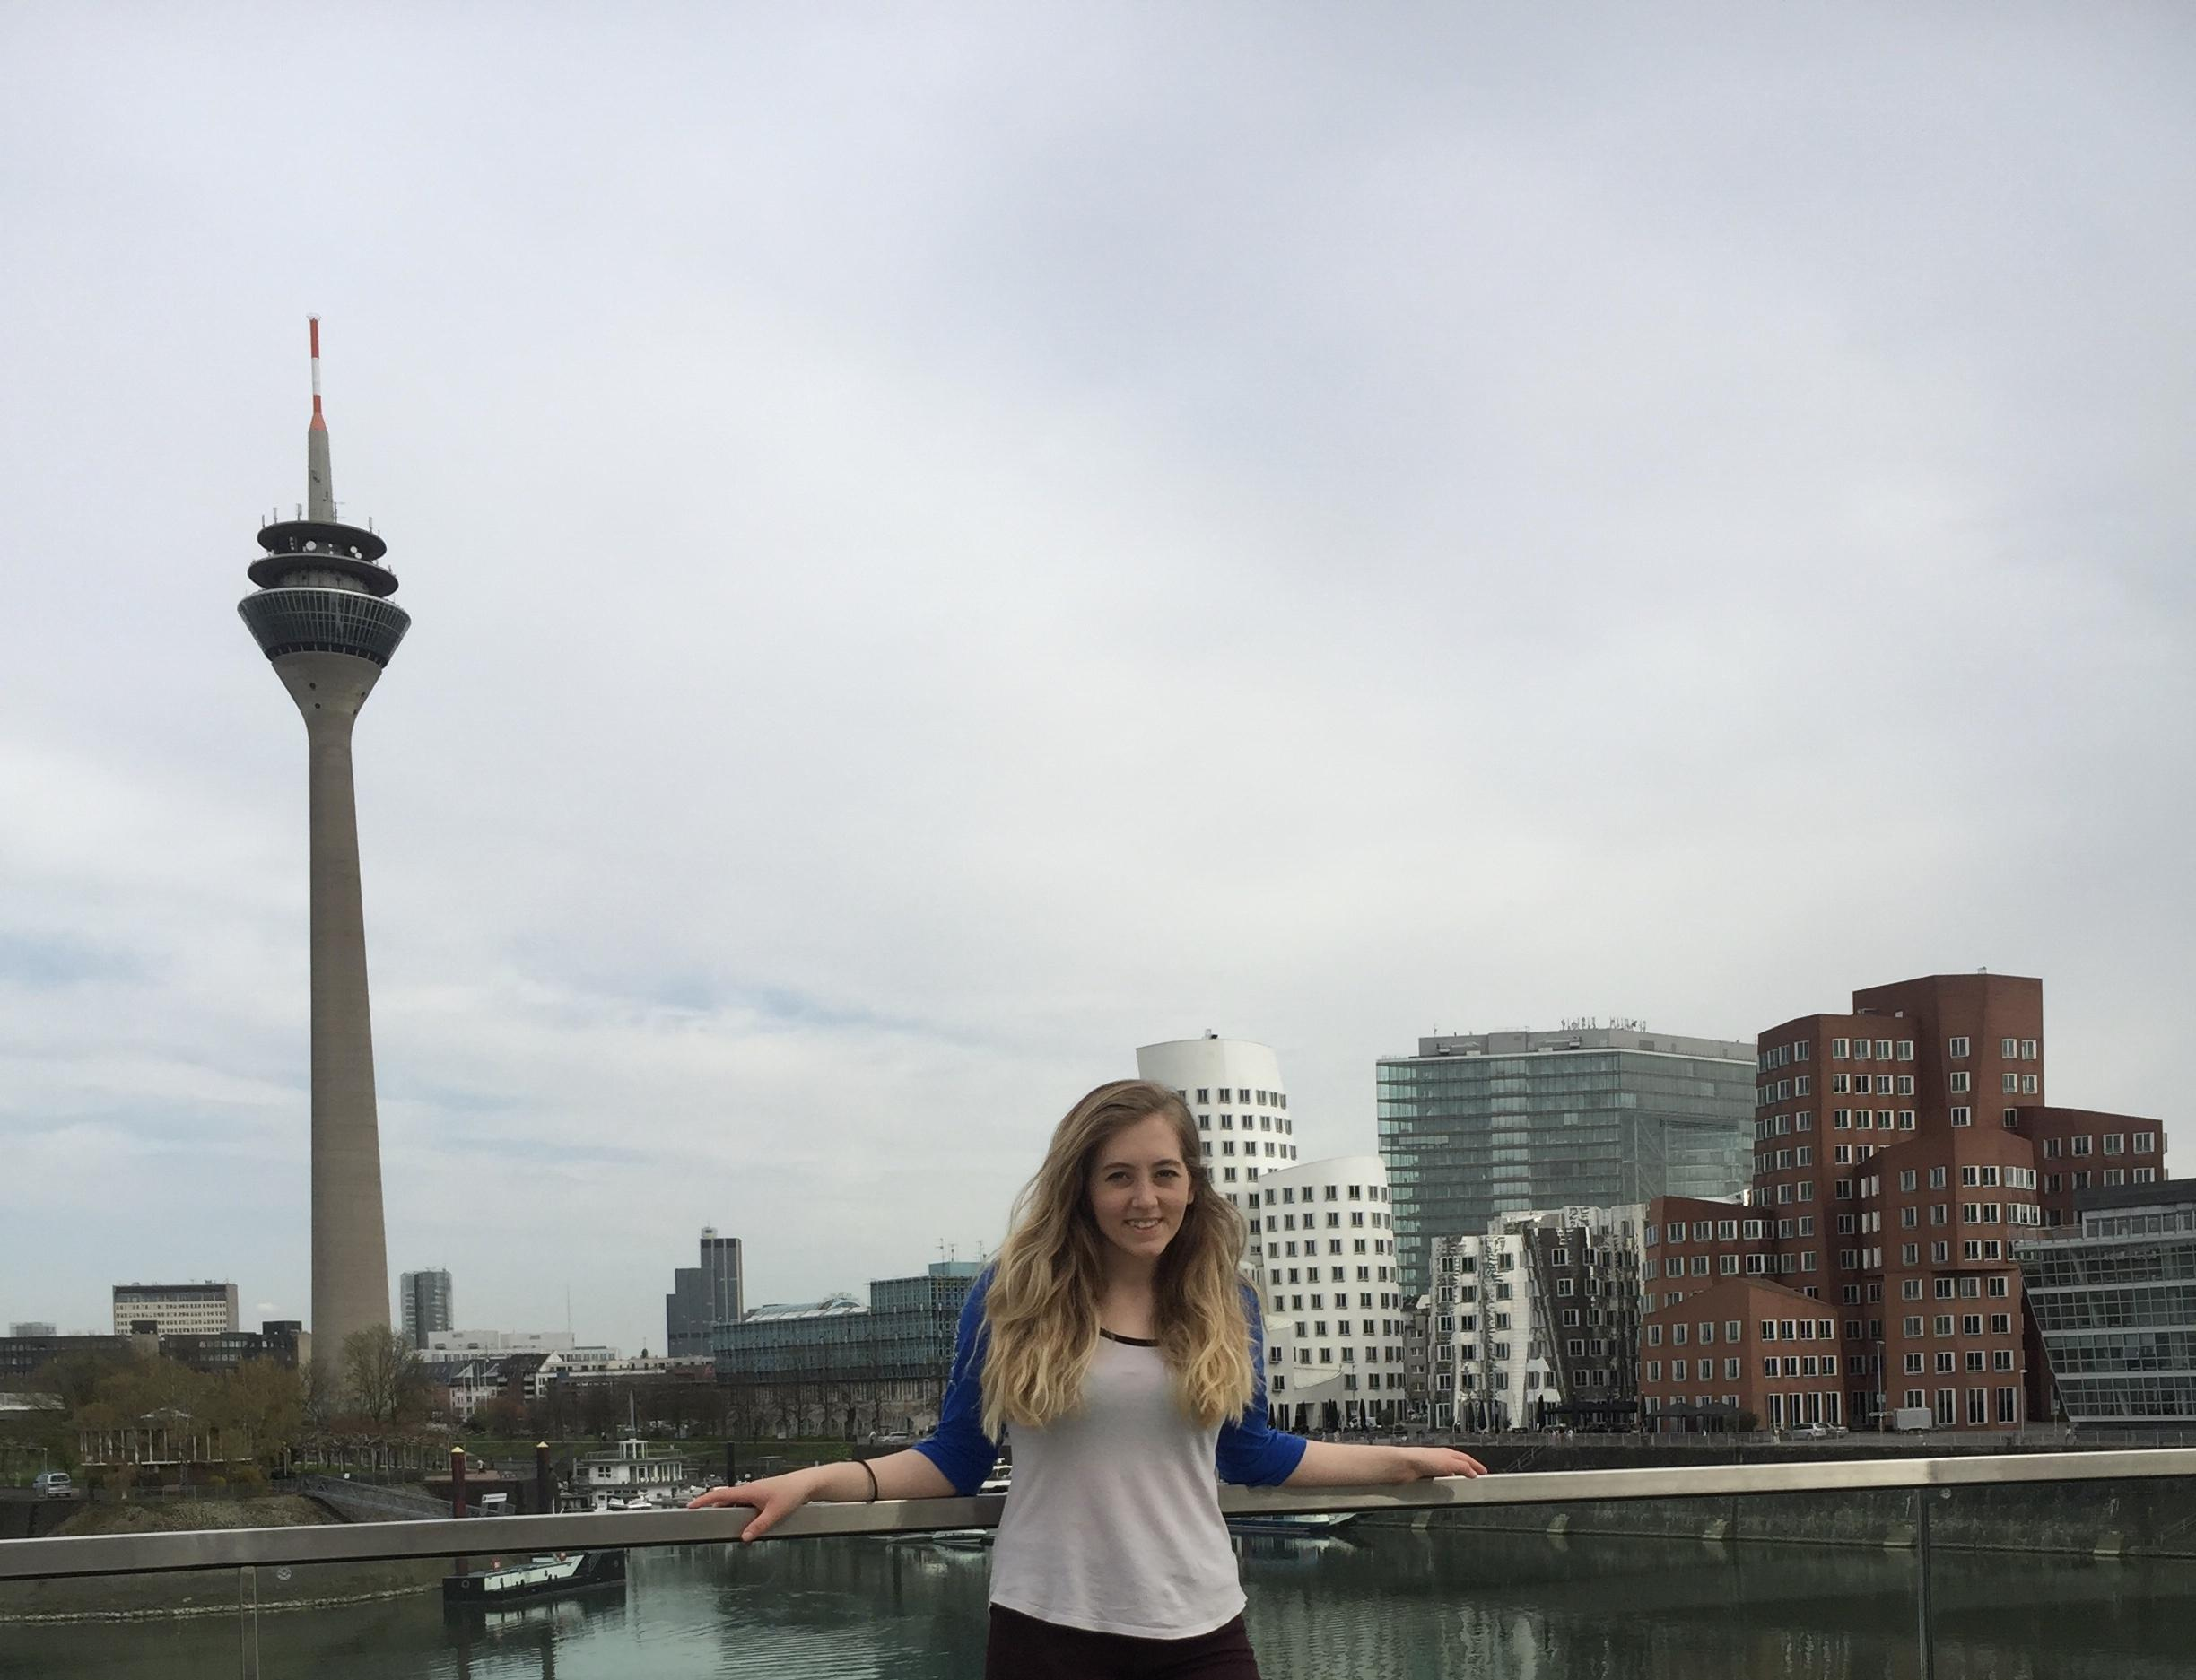 Morris Alum and Fulbright Scholar, Olivia Ilgar standing in front of the Dusseldorf, Germany skyline.